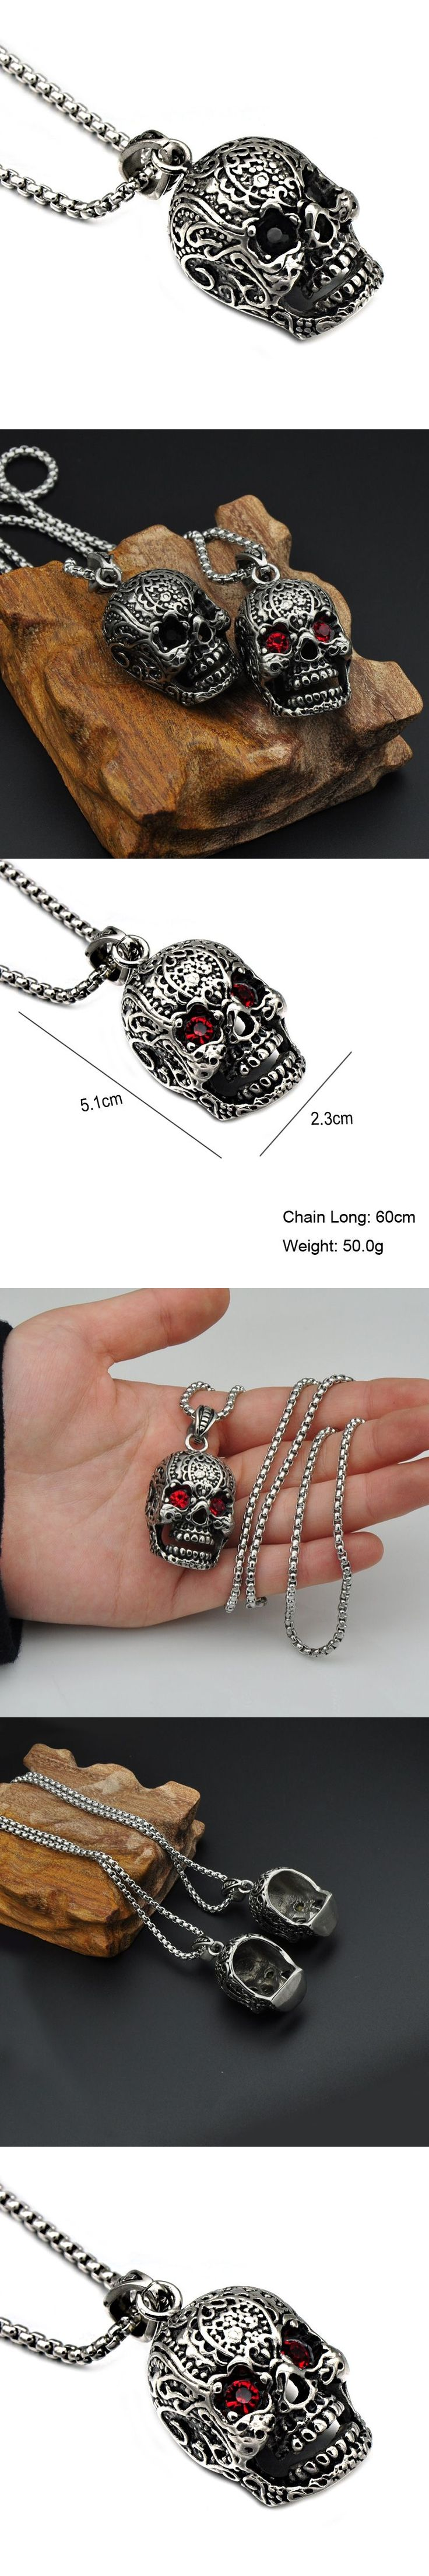 HIP Punk Gothic Red Cubic Zirconia Eyes Skull Men Necklaces Pendants Hallowee Titanium Stainless Steel Necklaces for Men Jewelry